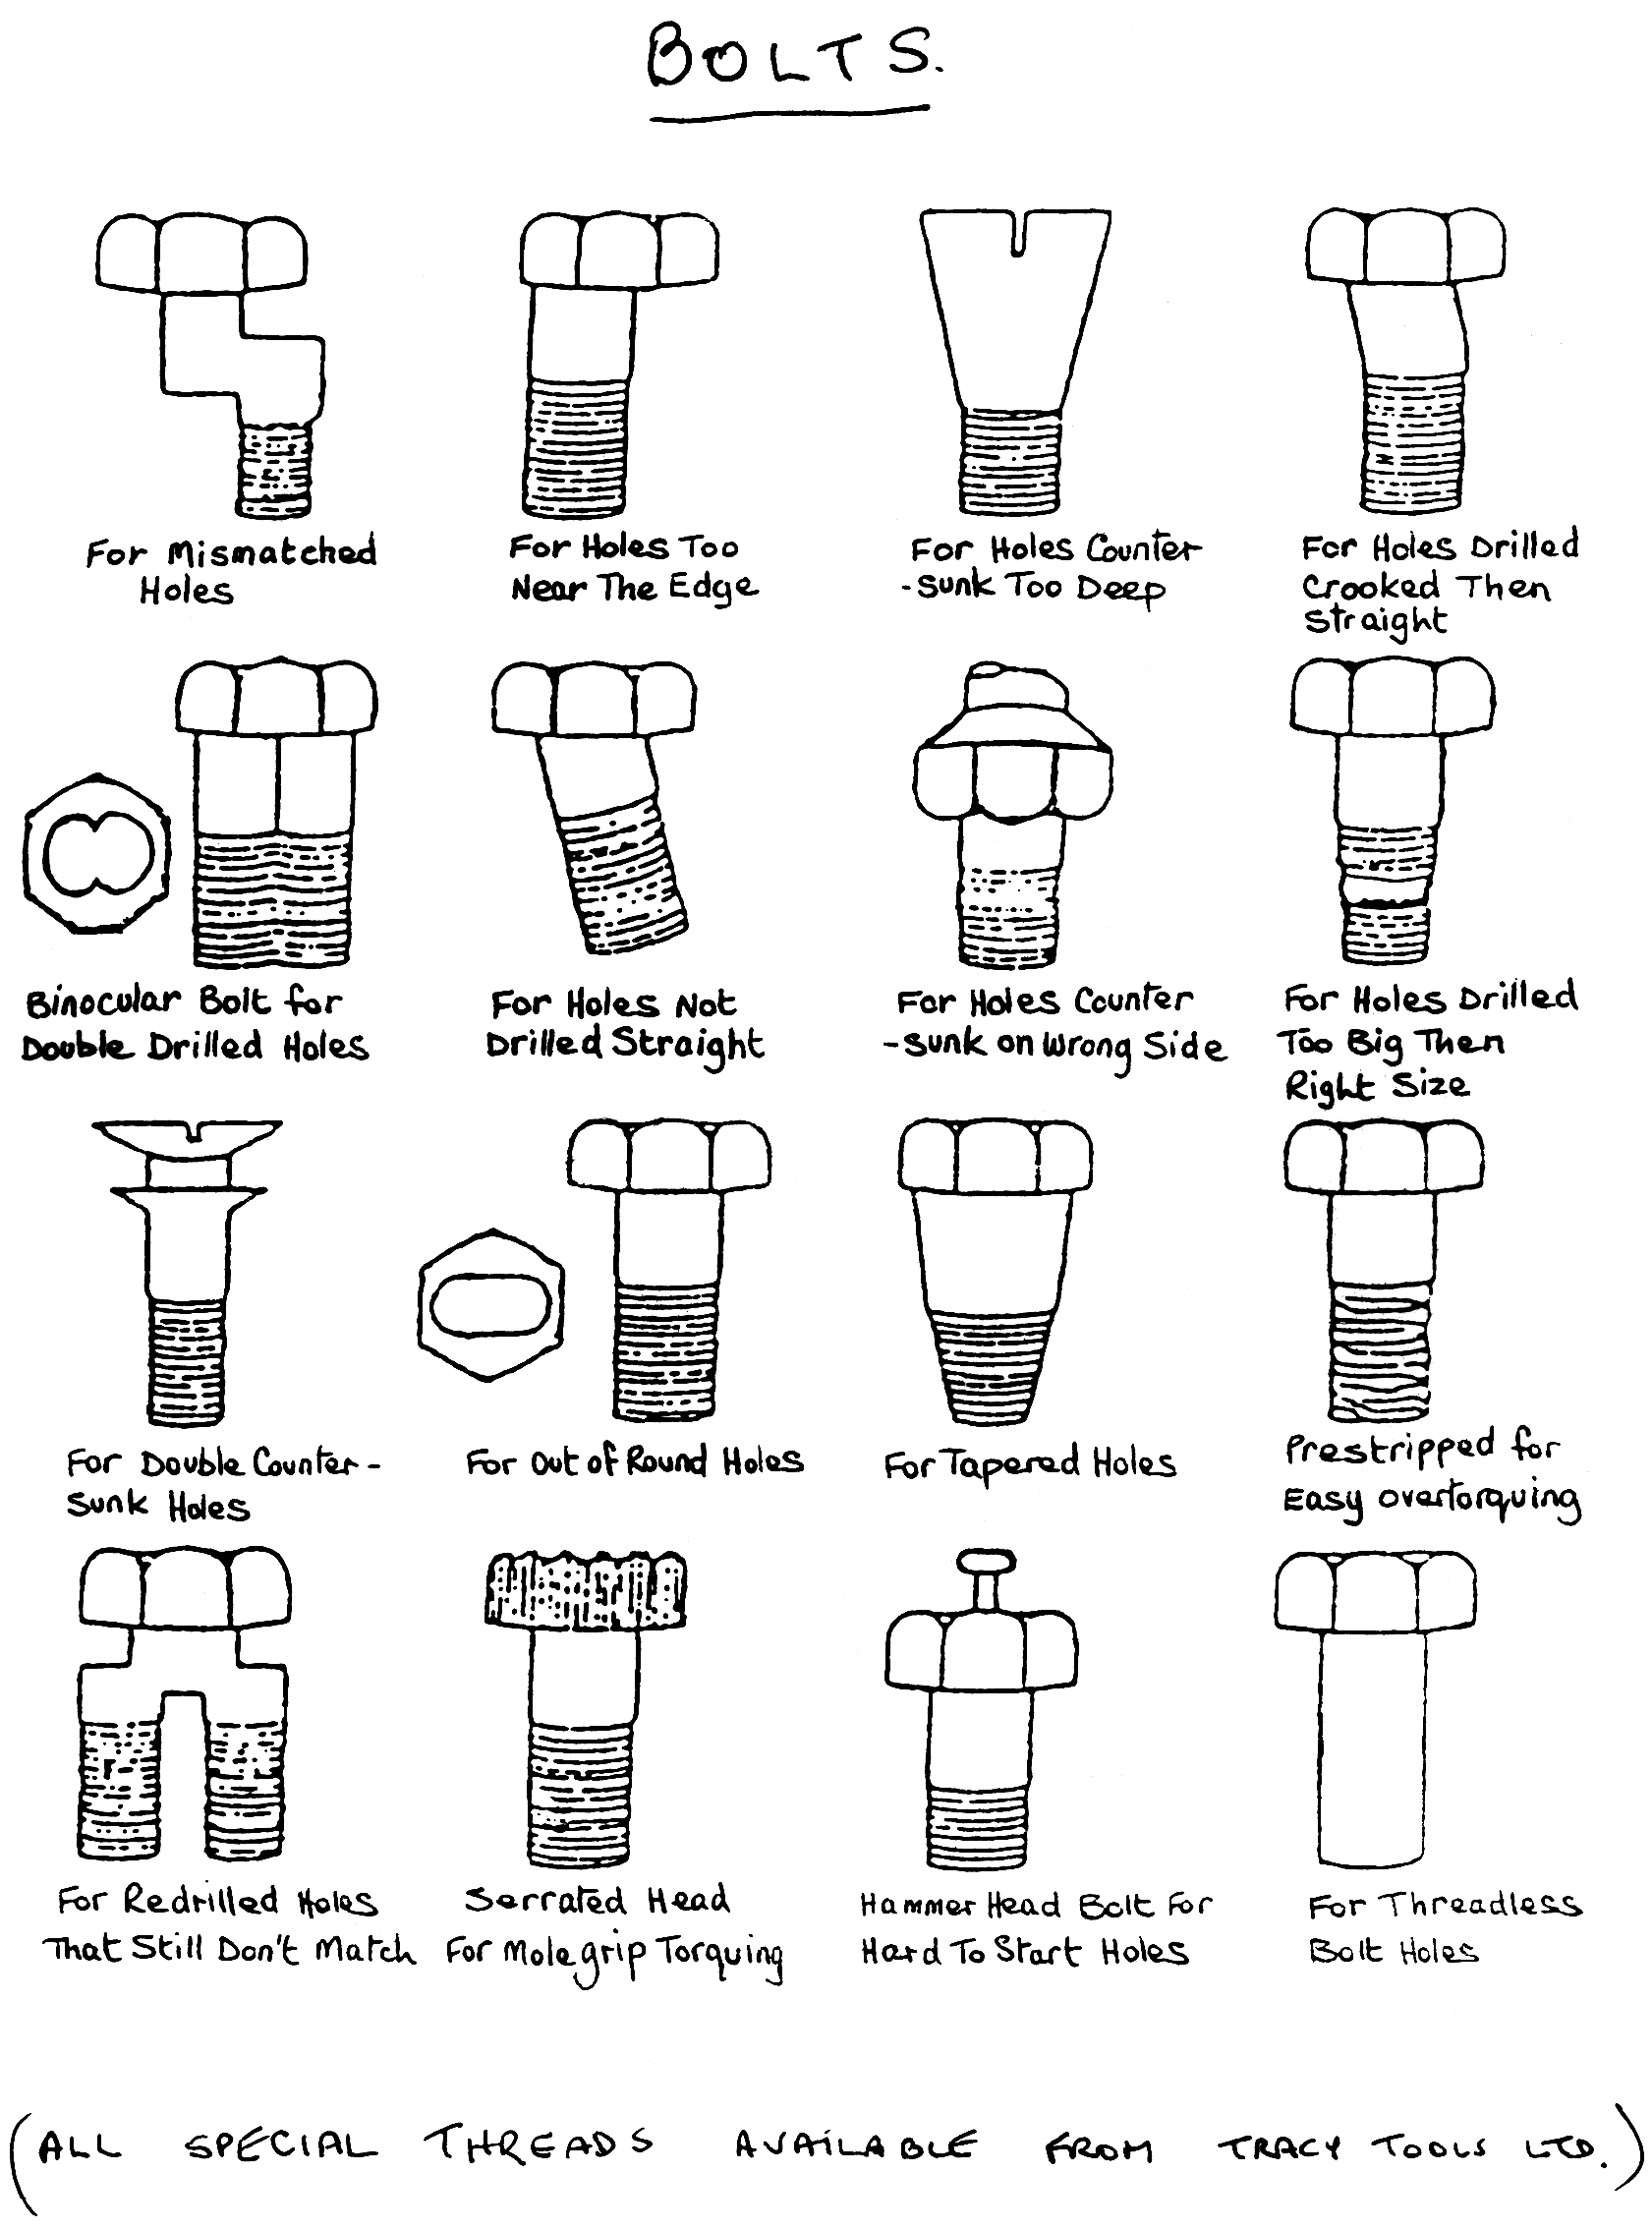 EMSK: Quick reference for all they types of screws ...